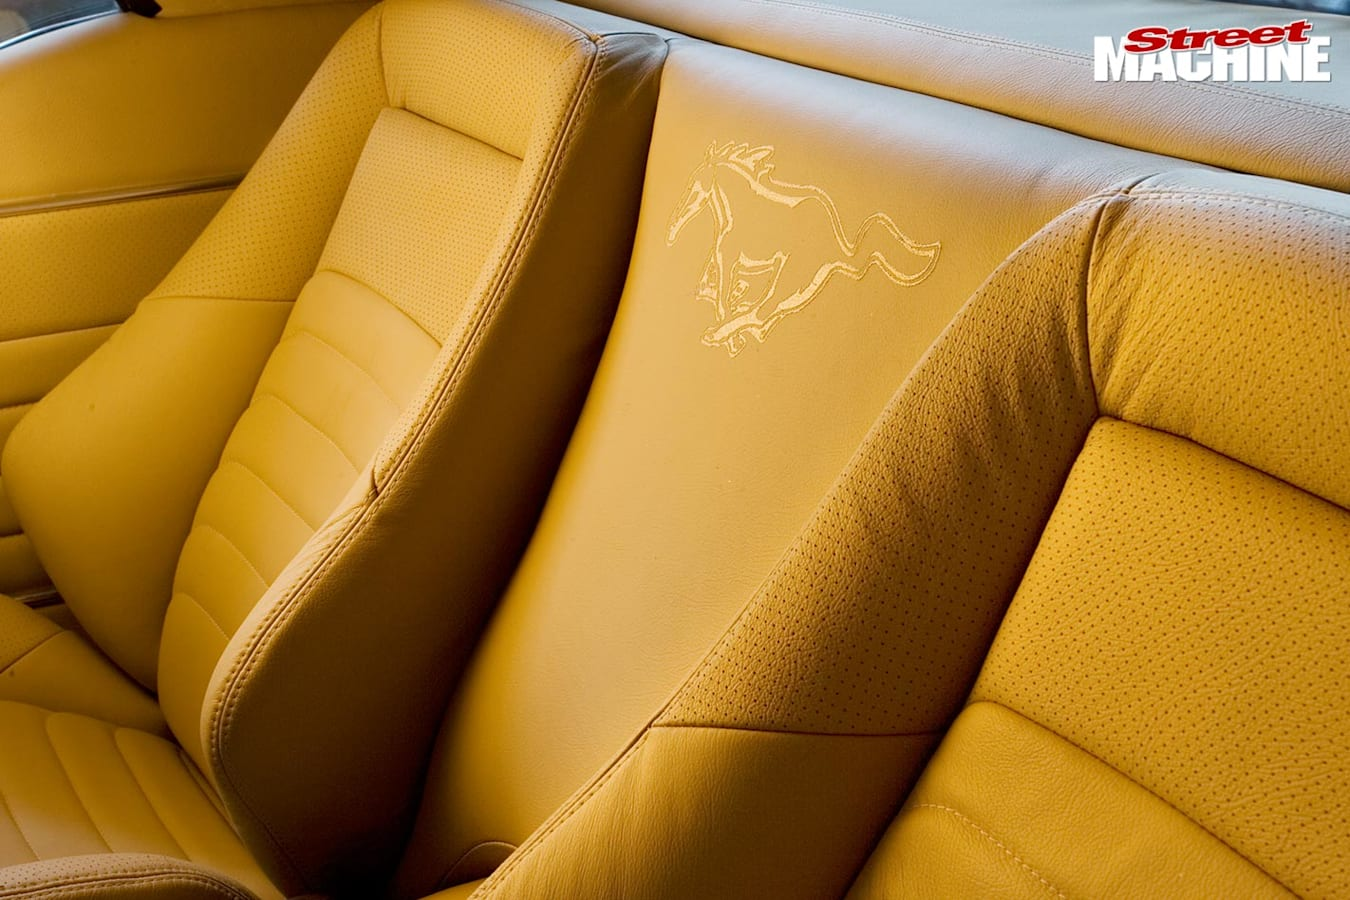 Ford Mustang rear seats